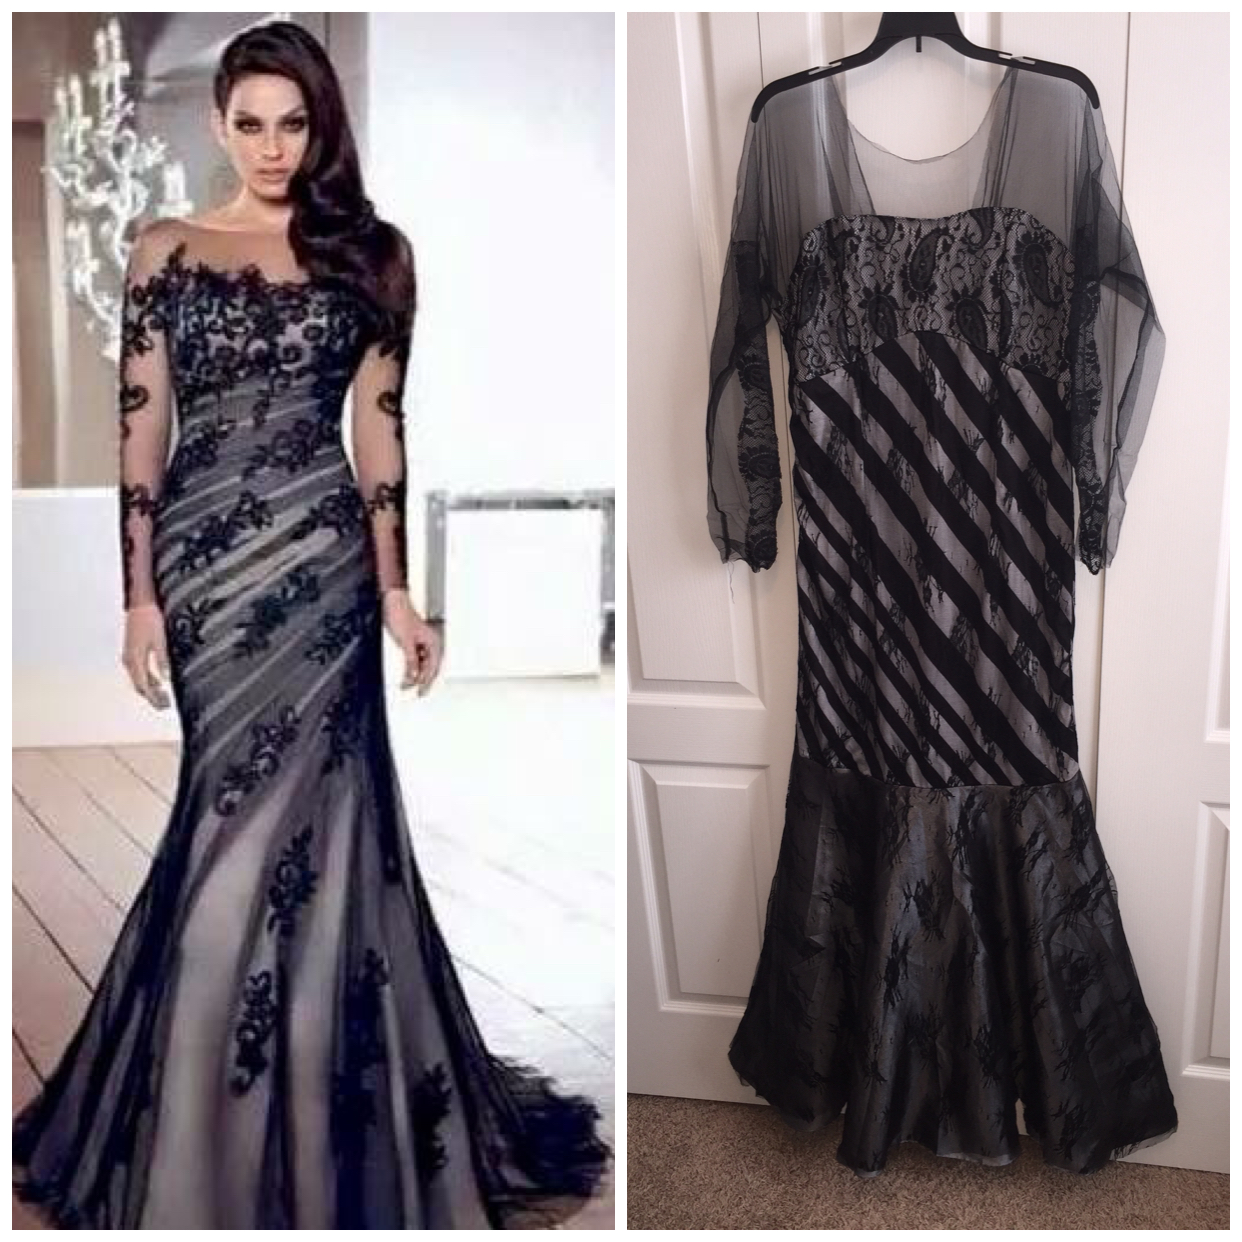 Fashion mia complaints - Rosewe Dress Review From Clarksville Tennessee 20160209786828